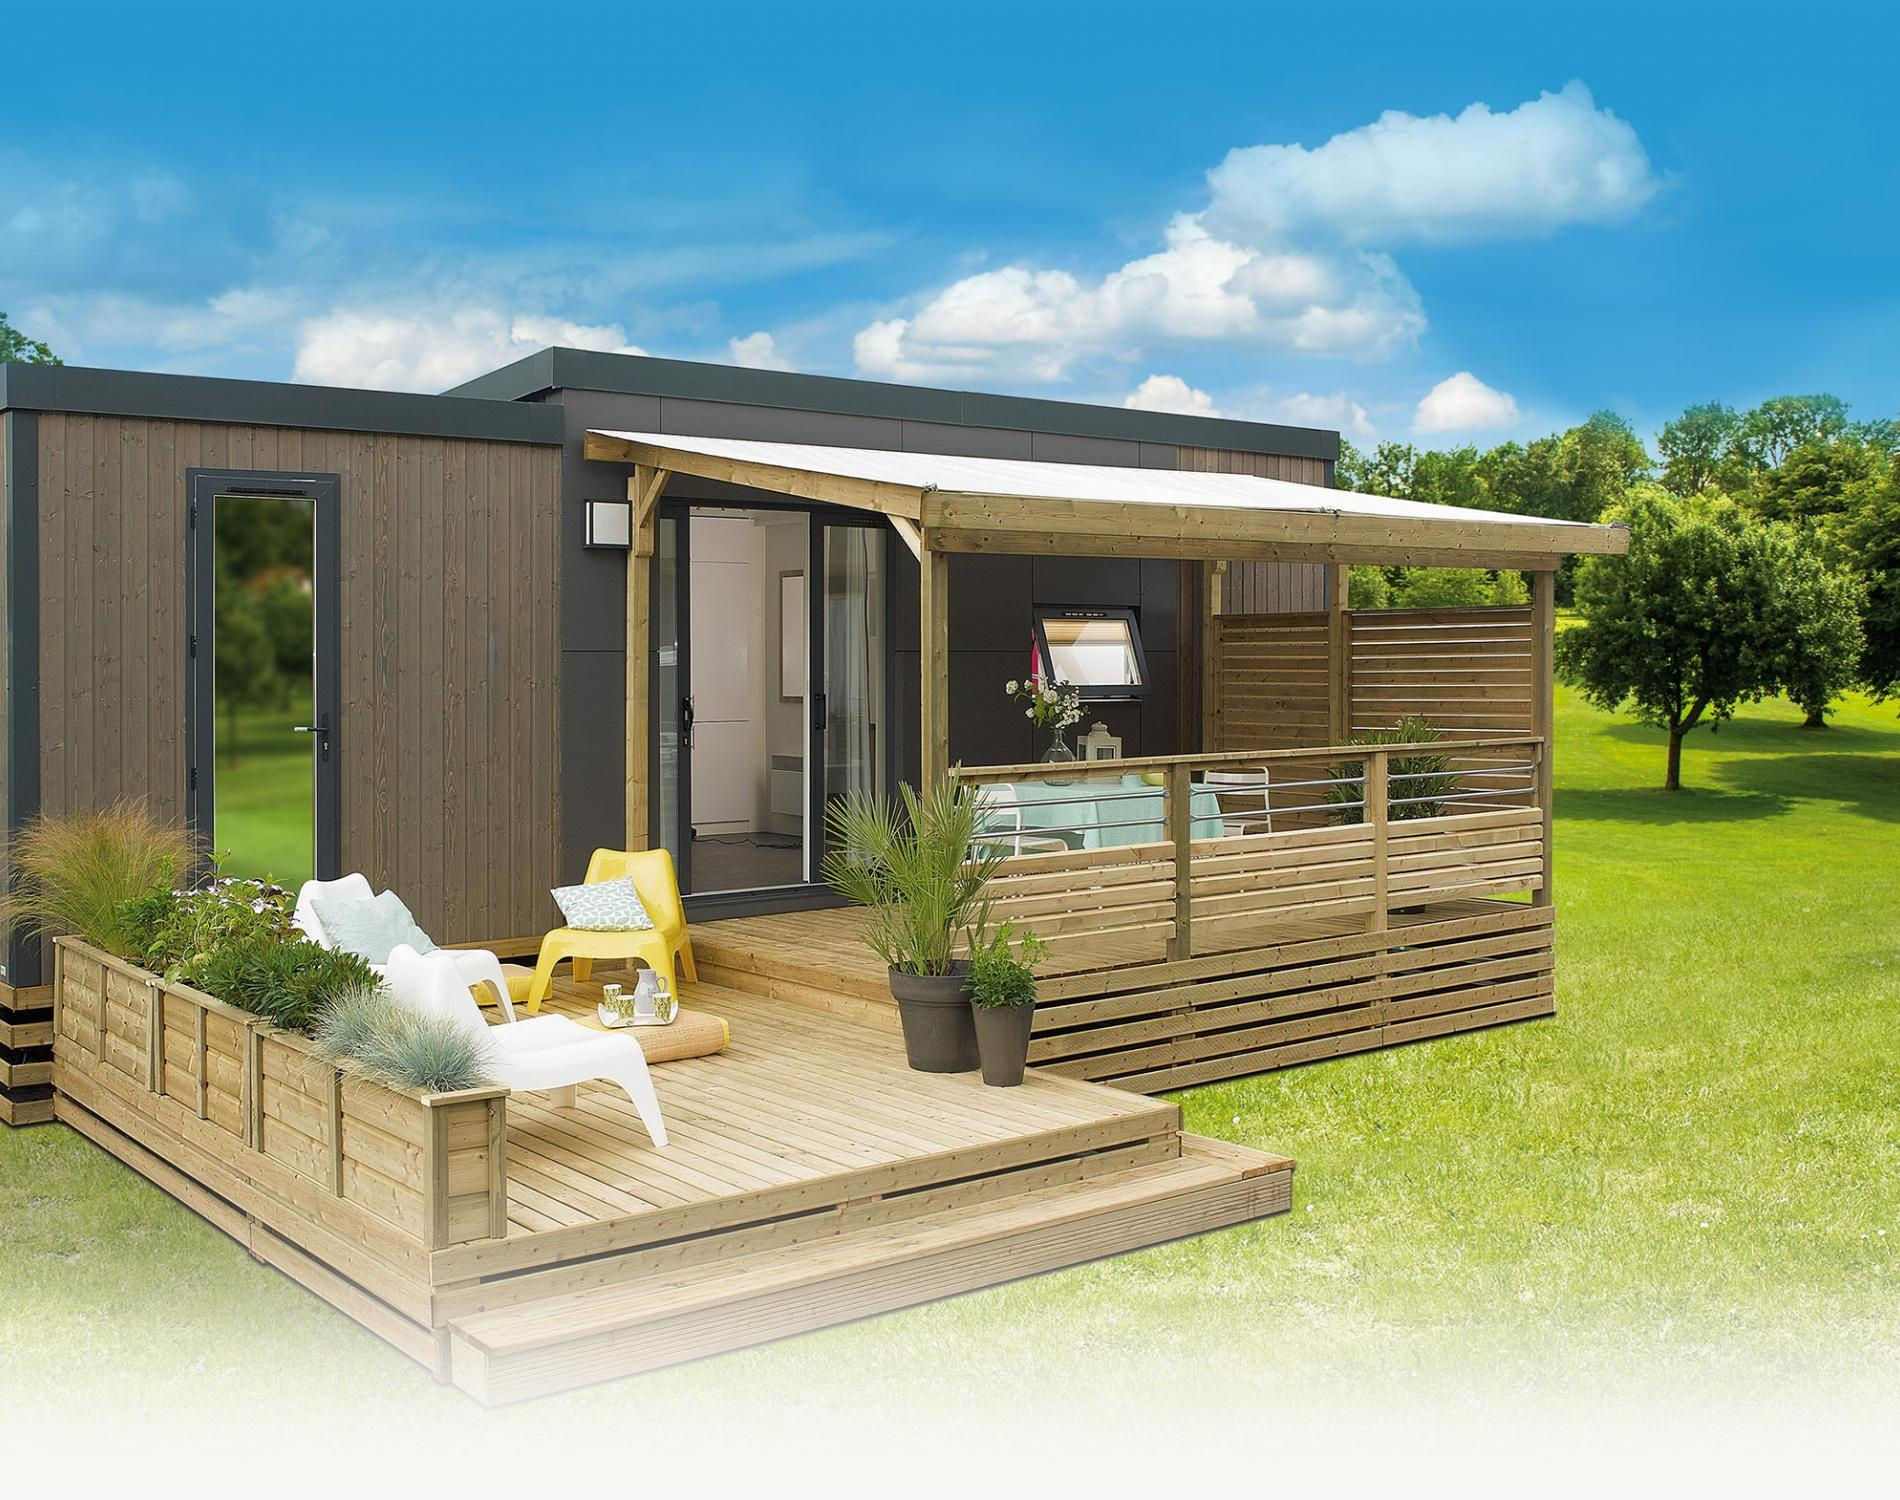 Vente mobil home occasion particulier mobil home occasion zuydcoote